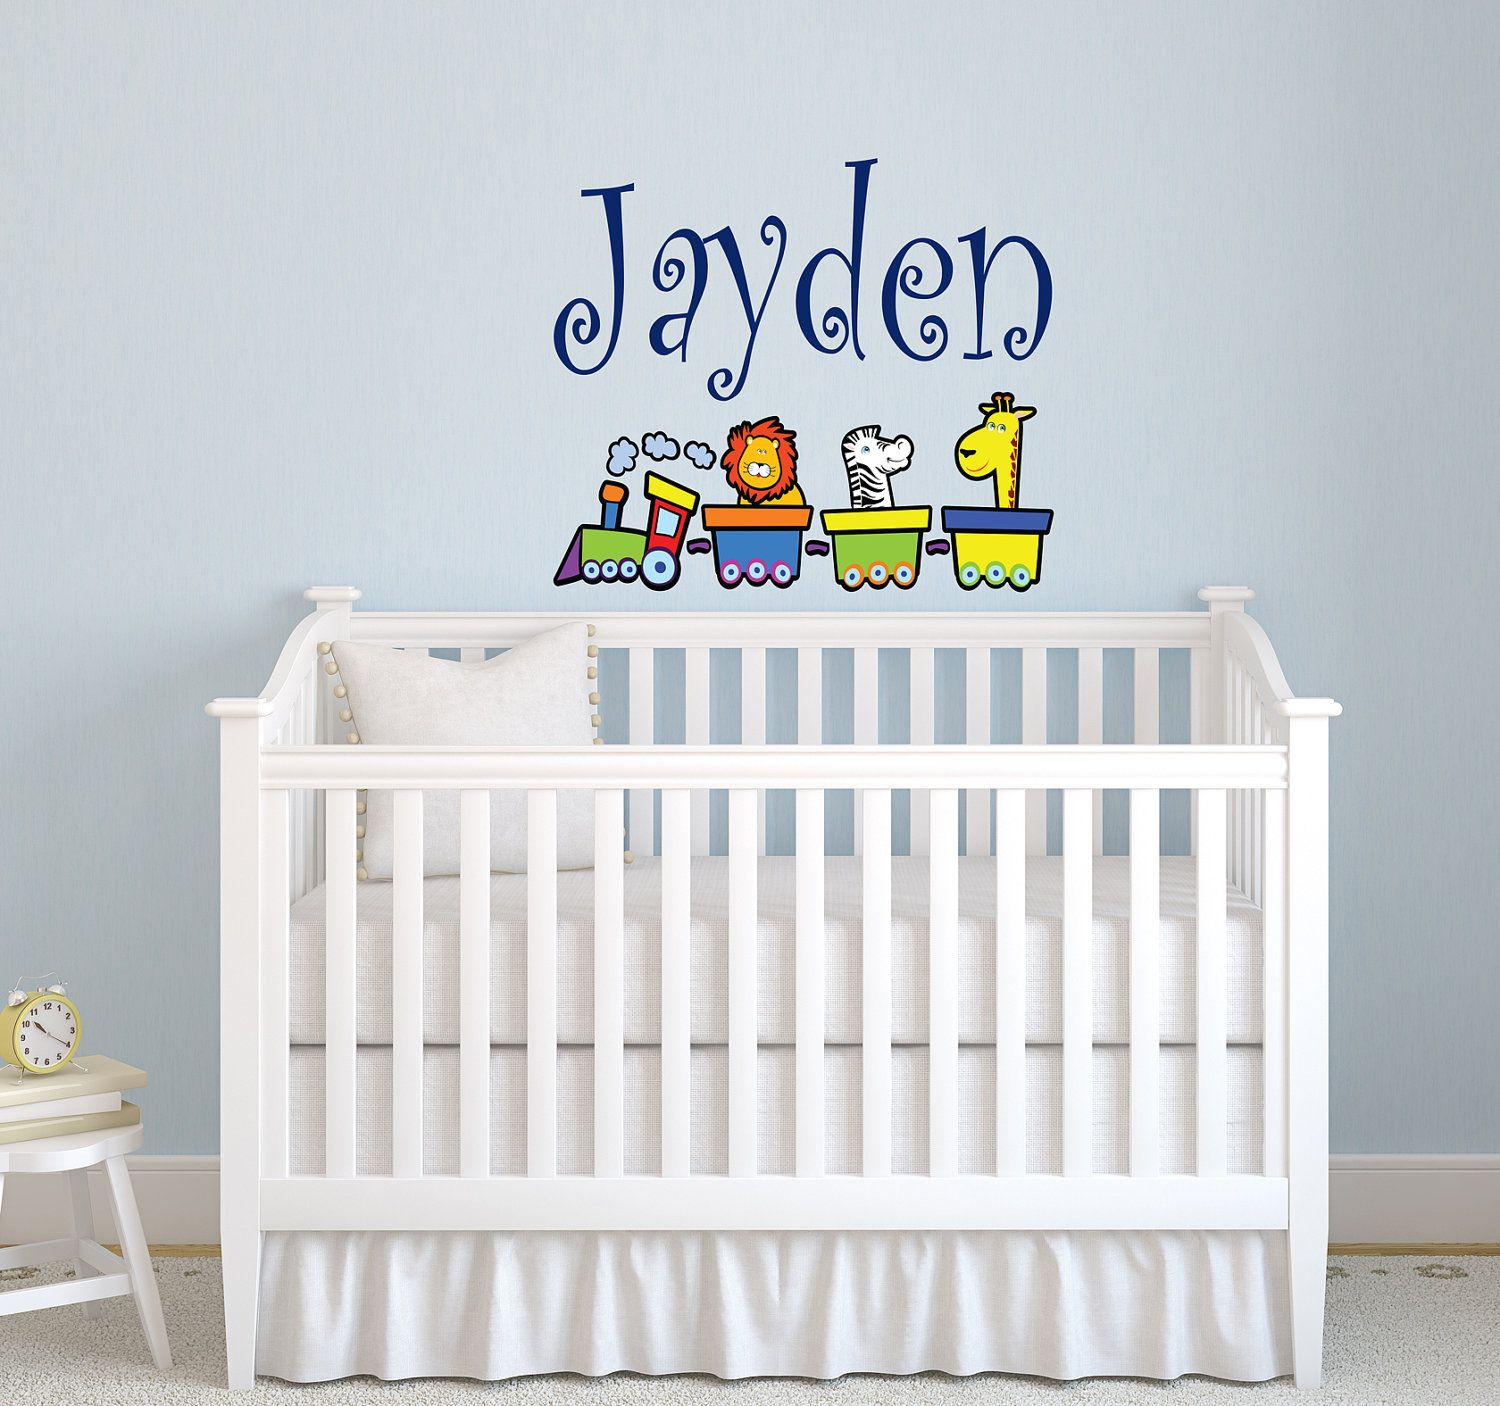 Design with Vinyl Moti 2512 2 Decal Wall Sticker I Imagined You I prayed For You Bedroom Quote Kids Boy Girl Color Black Size 8 Inches x 32 Inches I Dreamed of You